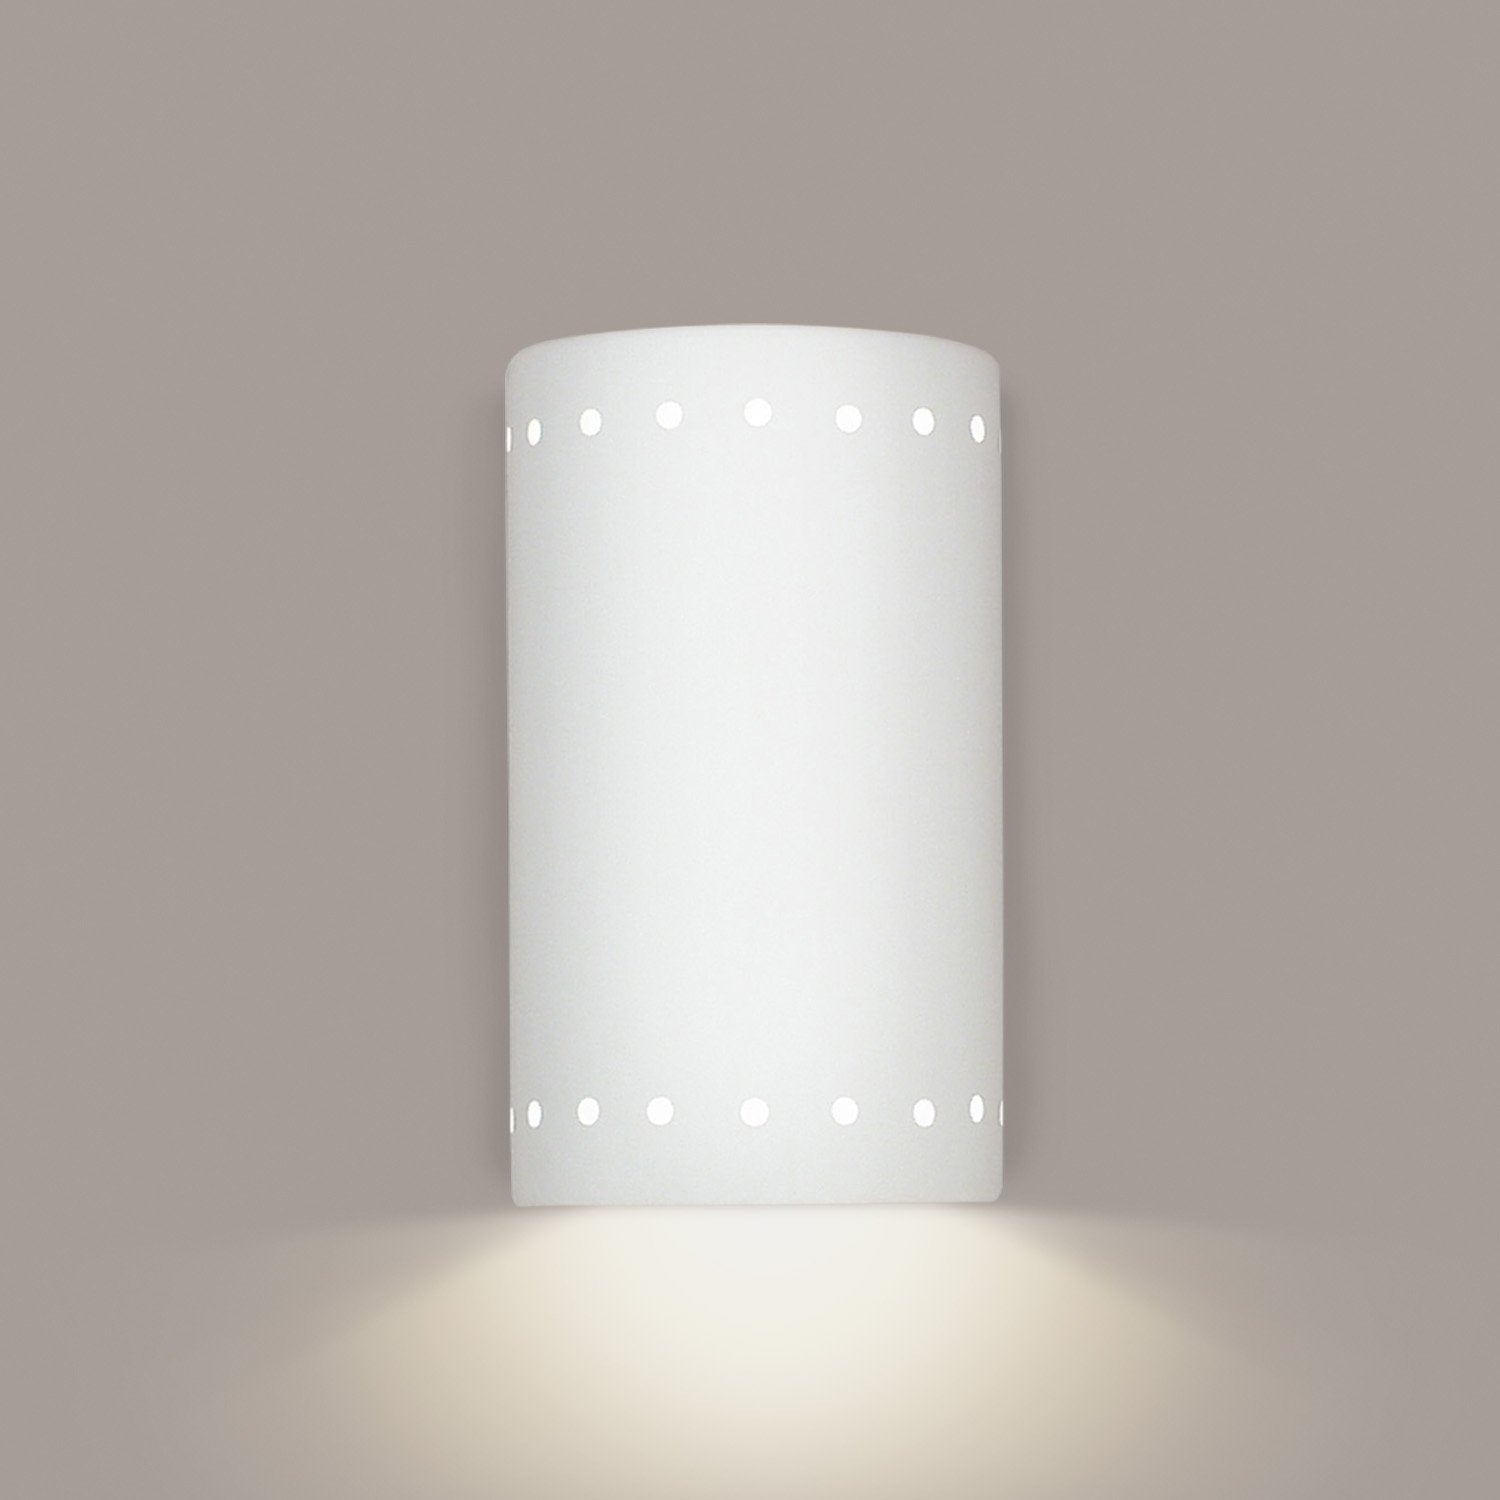 A19 219-GU24-WG Islands of Light Collection Delos White Gloss Finish Wall Sconce from A19